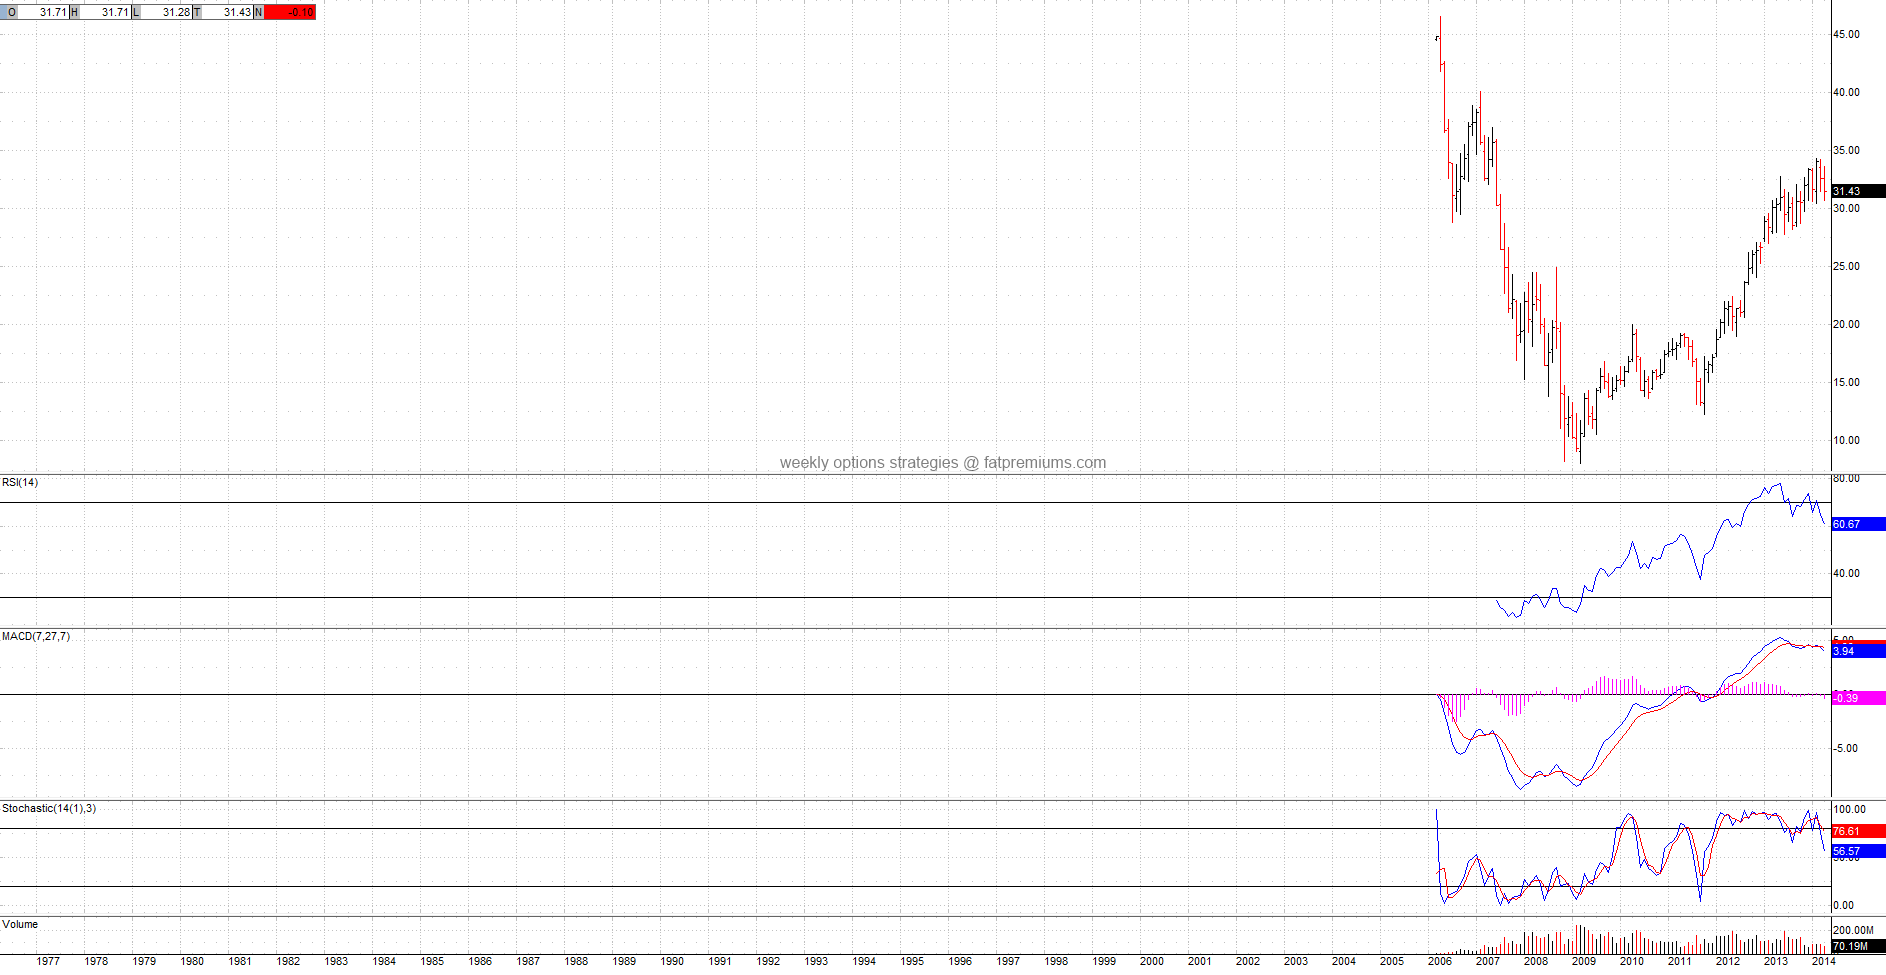 SPDR S&P Homebuilders (NYSEARCA:XHB) Monthly Chart (2014-04-18) Bearish